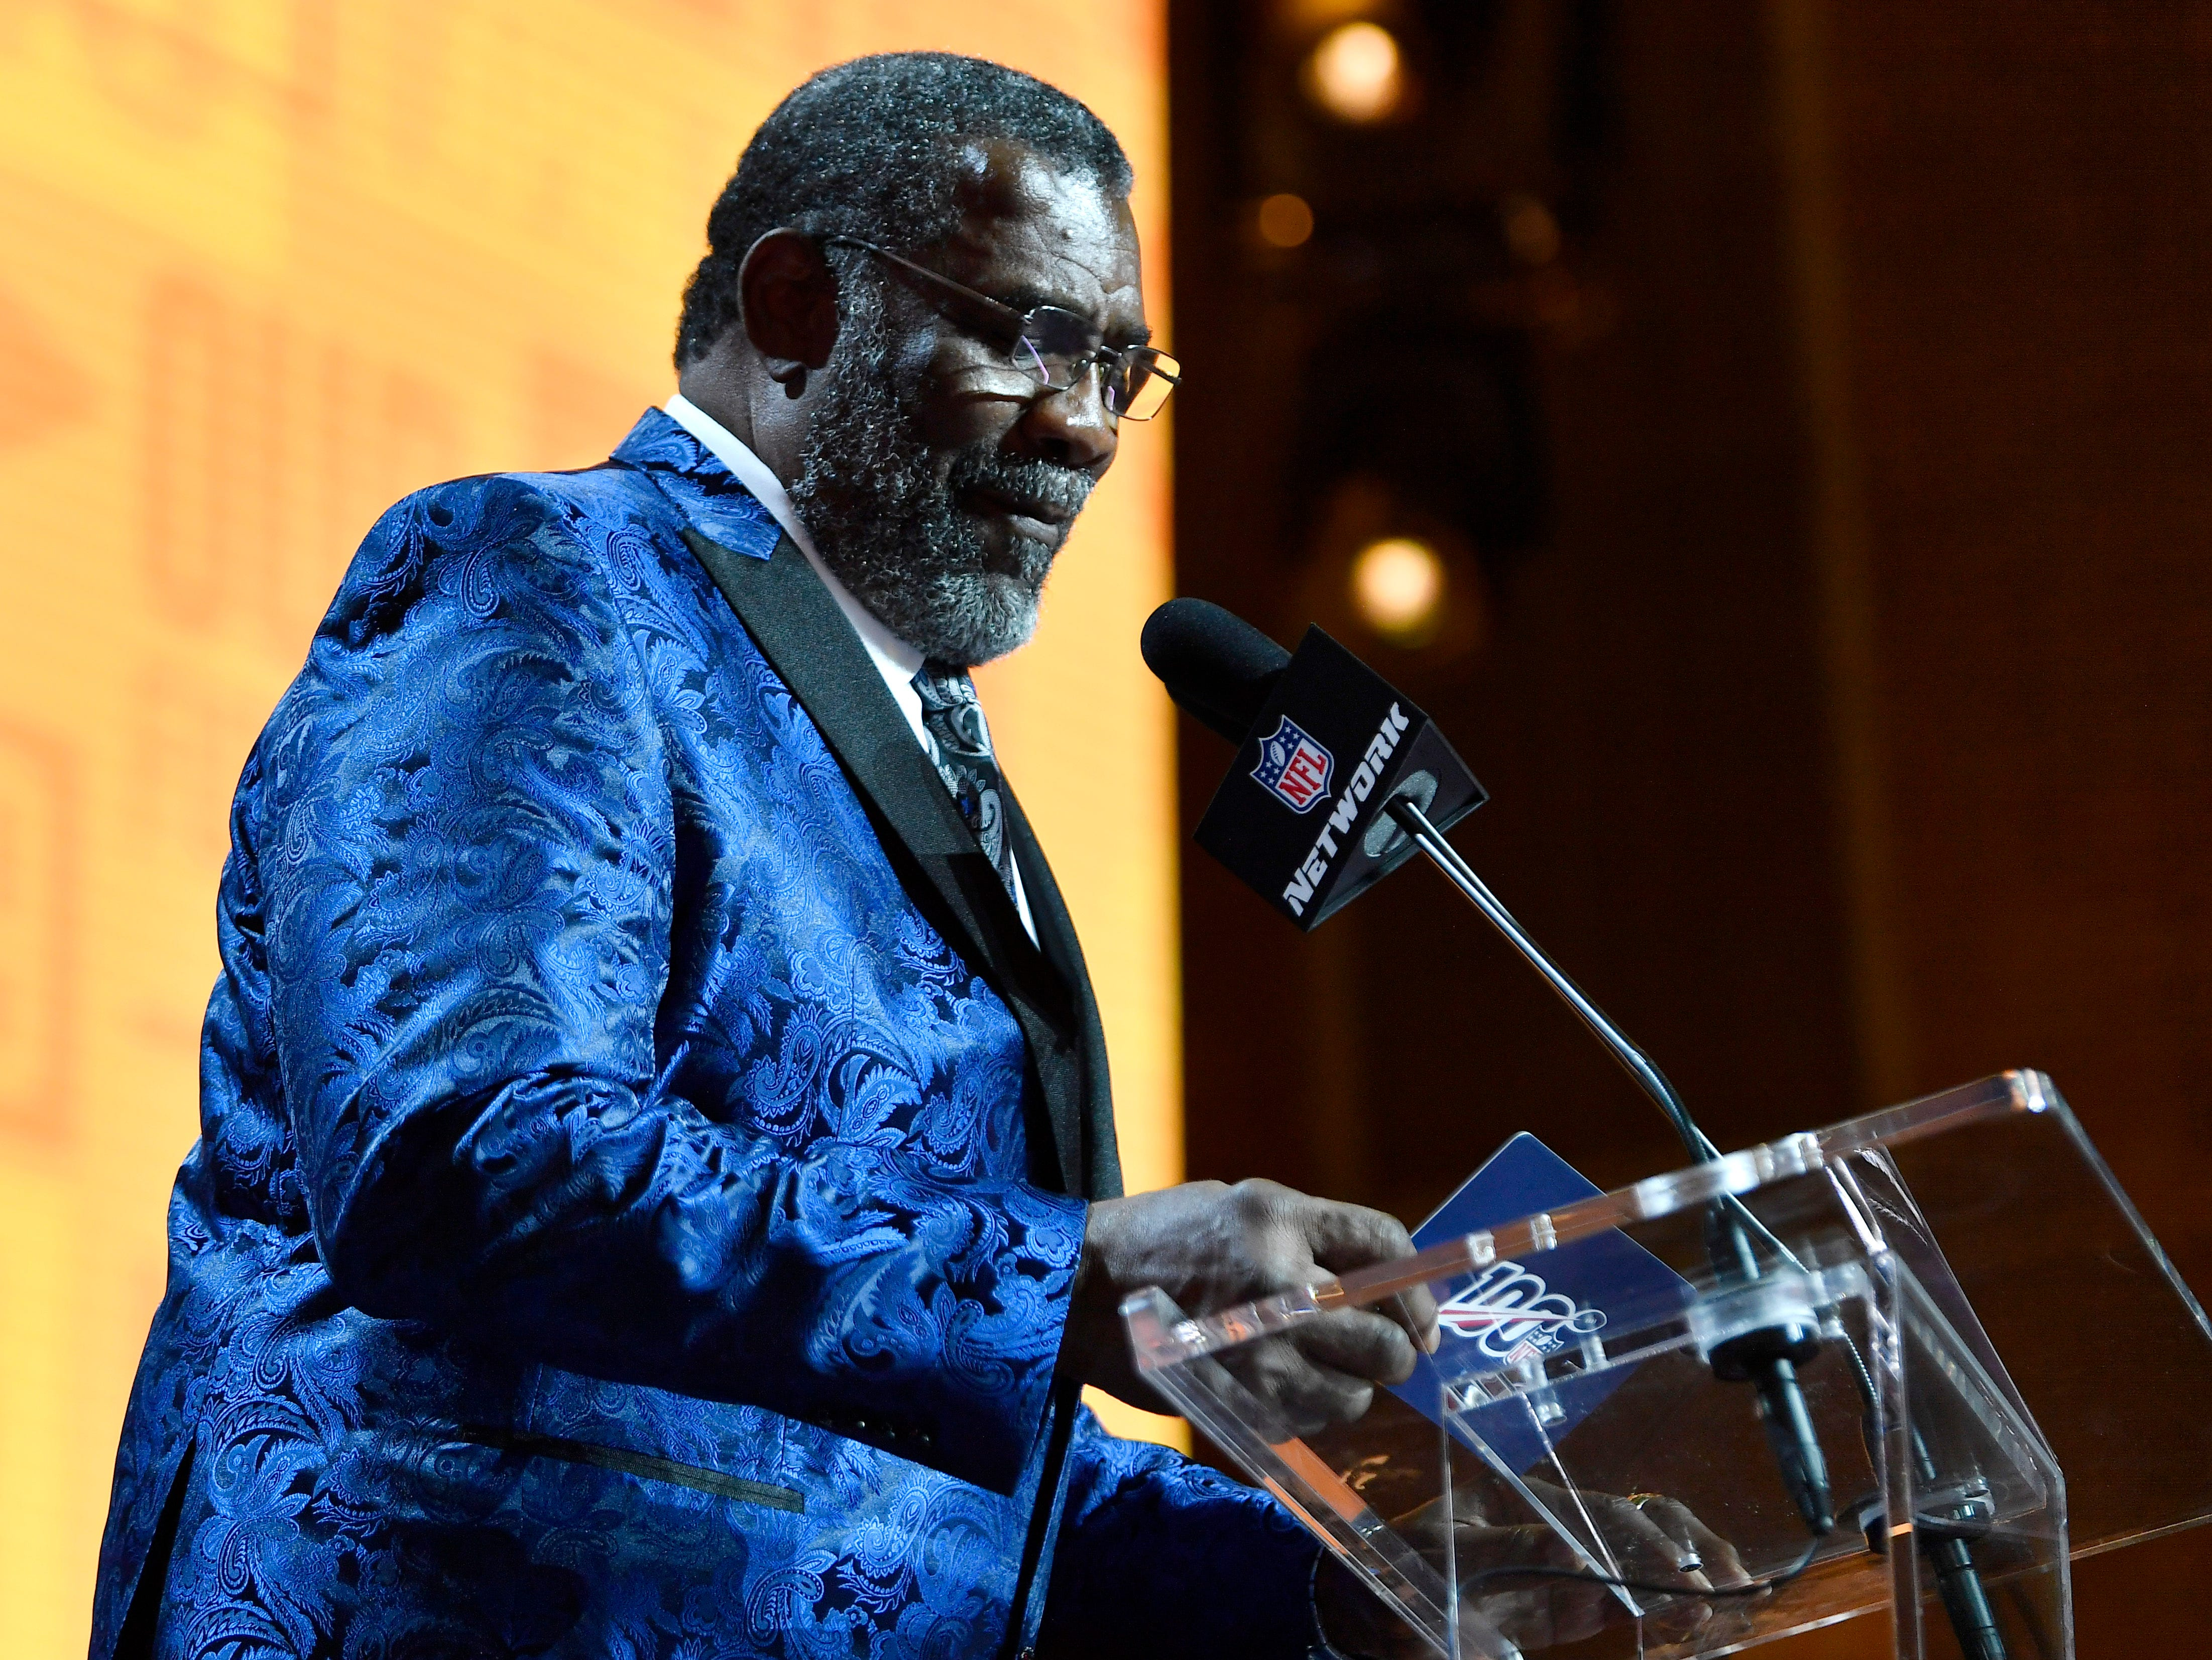 Former Pittsburgh Steelers great Joe Greene reads the team's pick during the first round of the NFL Draft Thursday, April 25, 2019, in Nashville, Tenn.